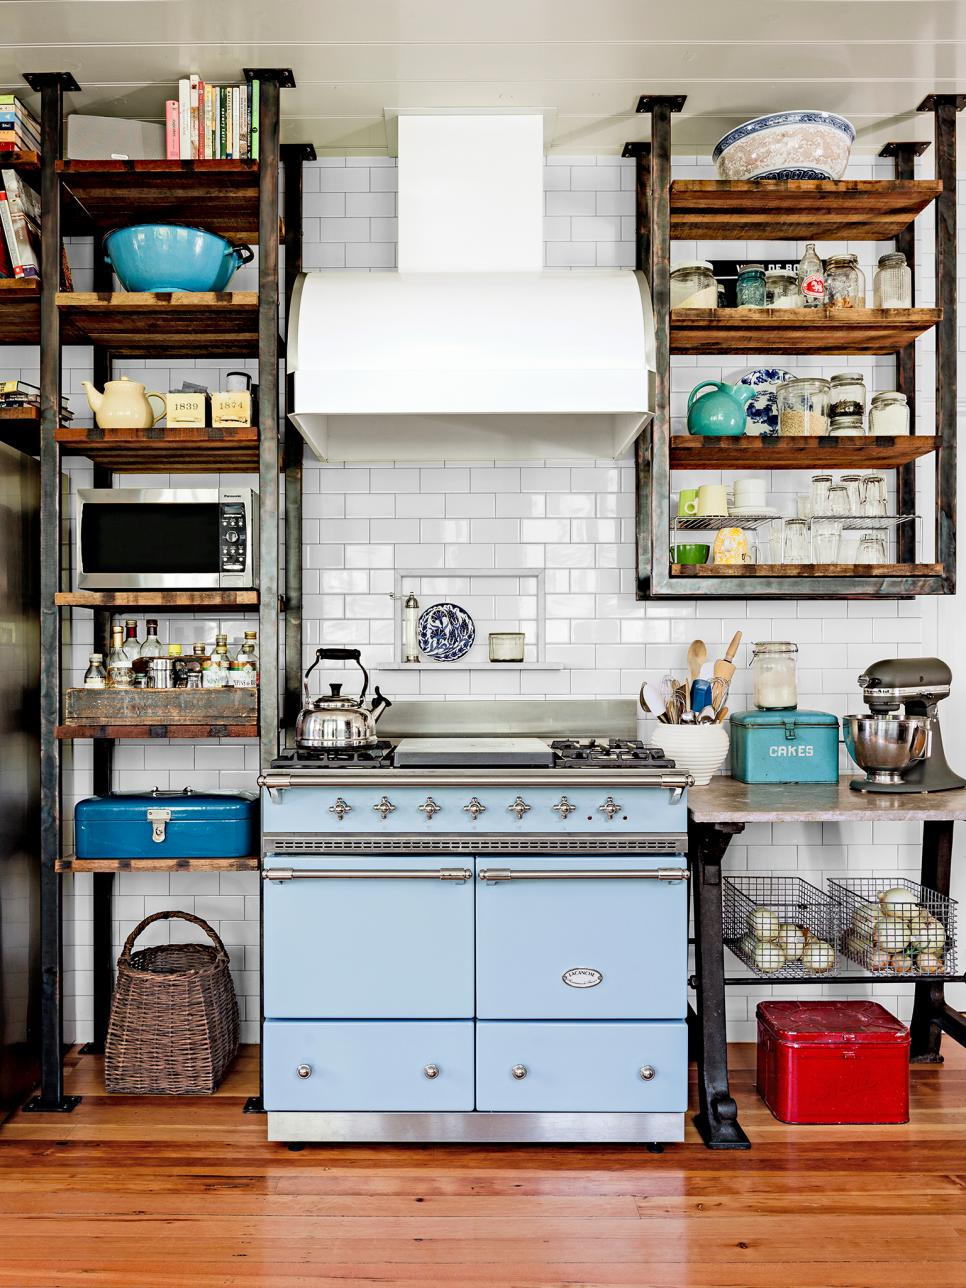 hgtv it blog friendly the shelving solution s in should of shelf a benefits your you kitchen open decorating try budget design reasons